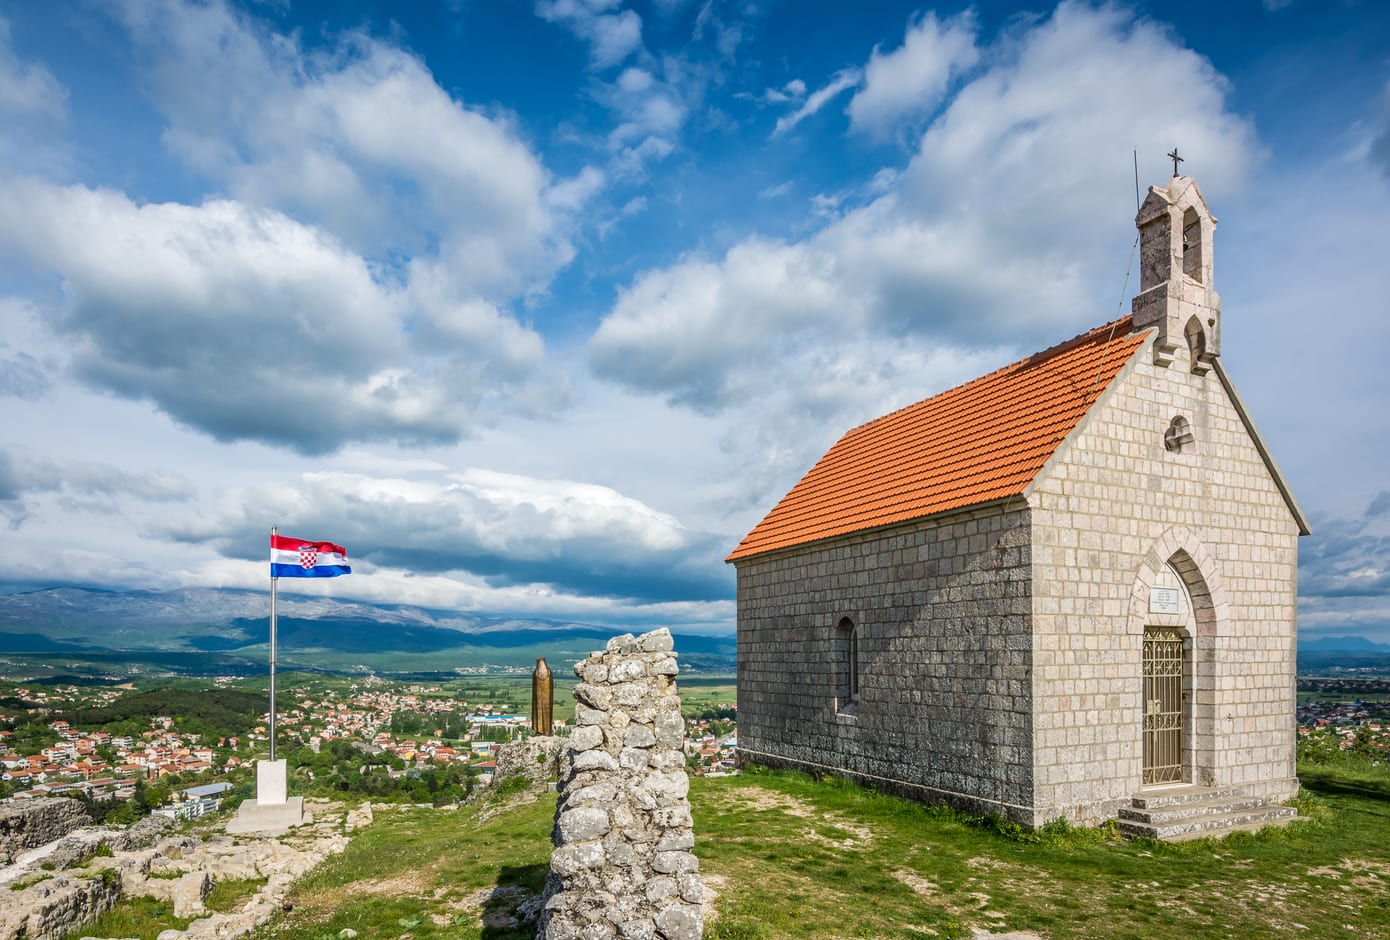 The chapel above the town of Sinj, in Croatia